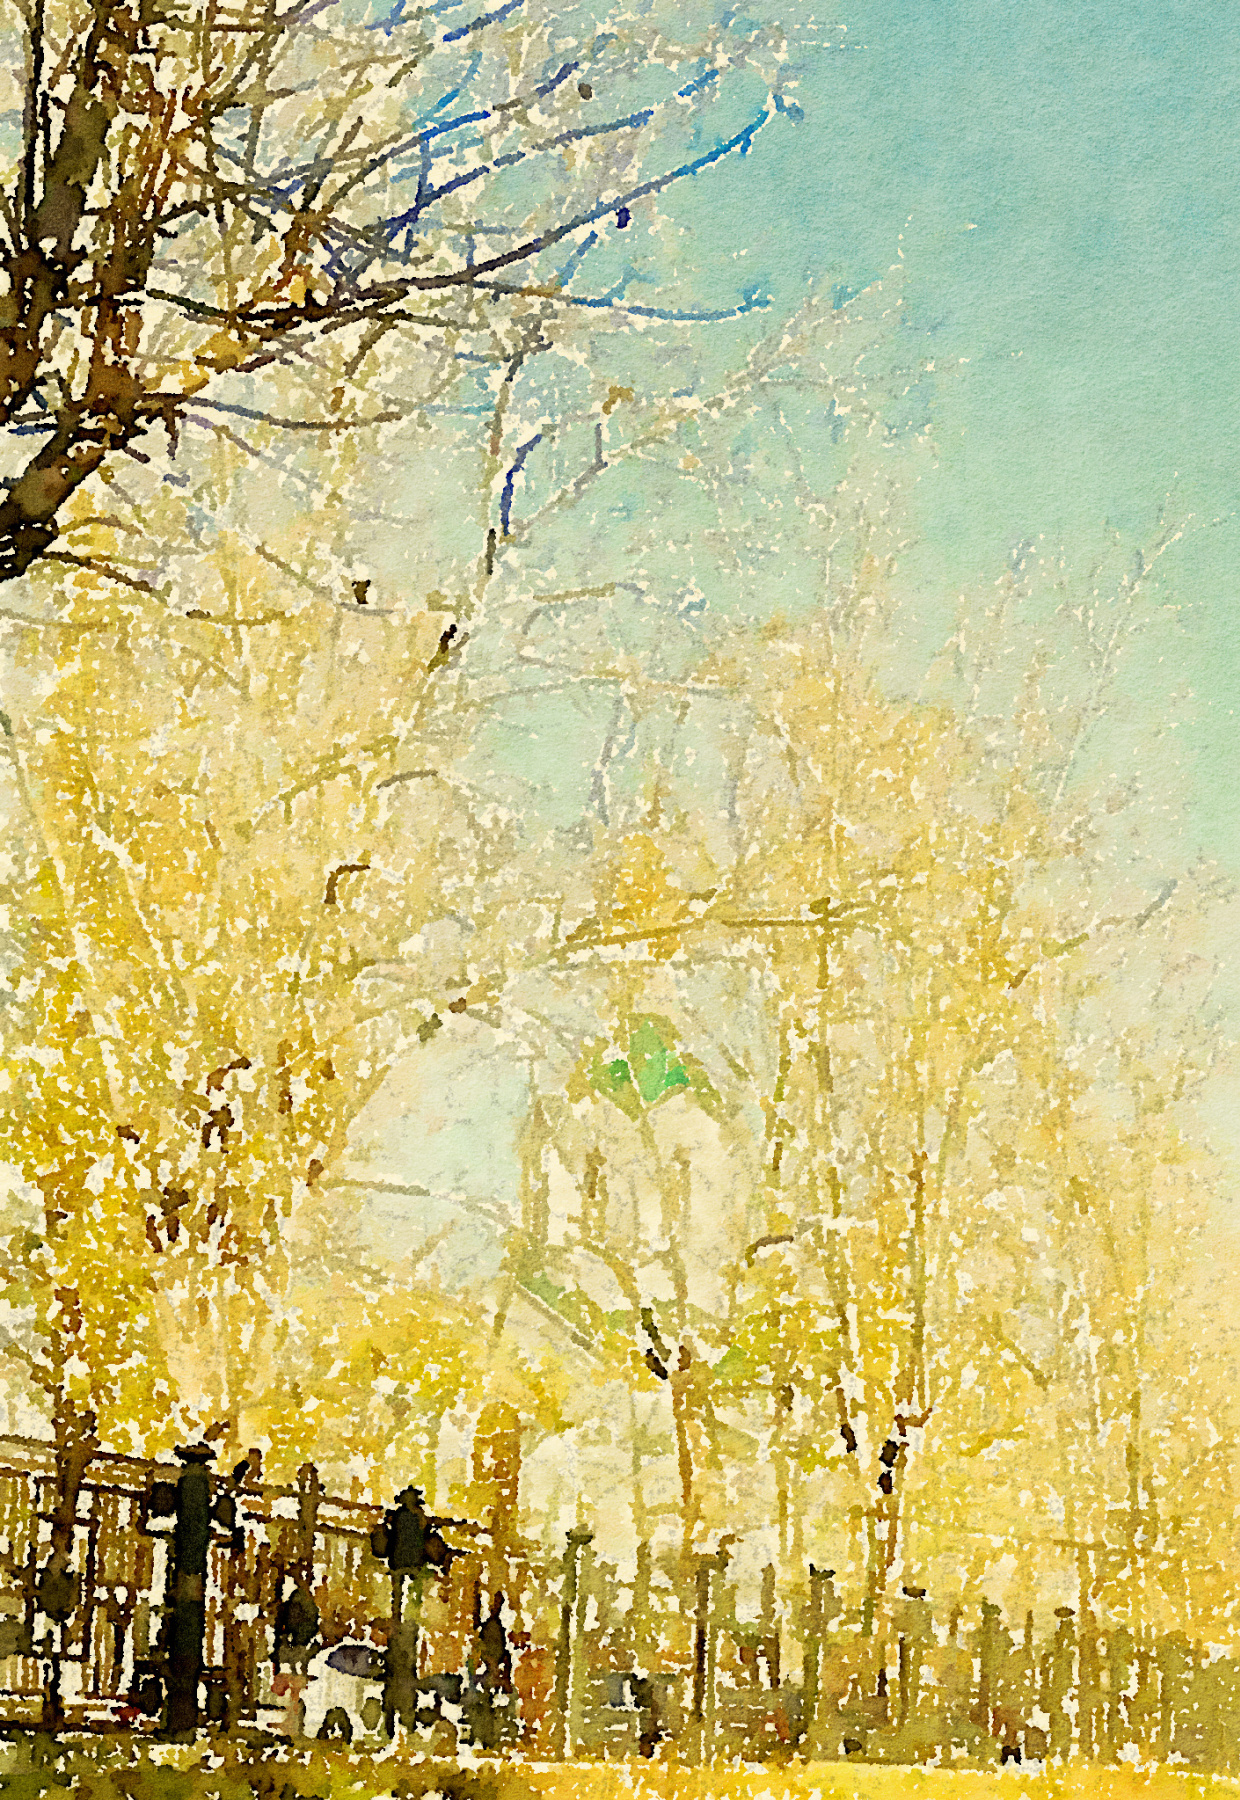 Valery Ilyichev. Ghost of old age